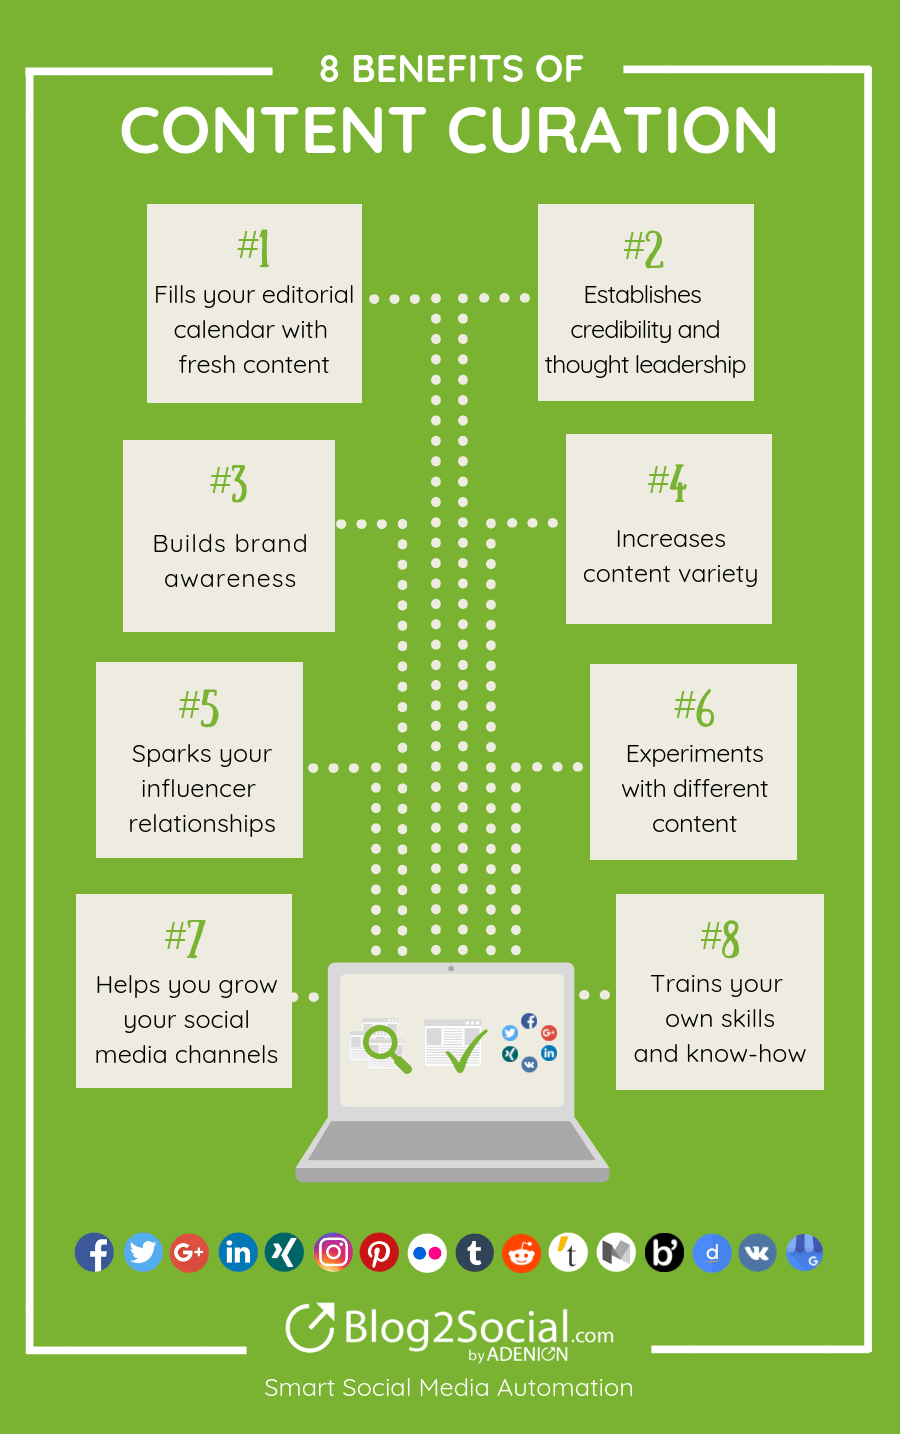 8 benefits of content curation